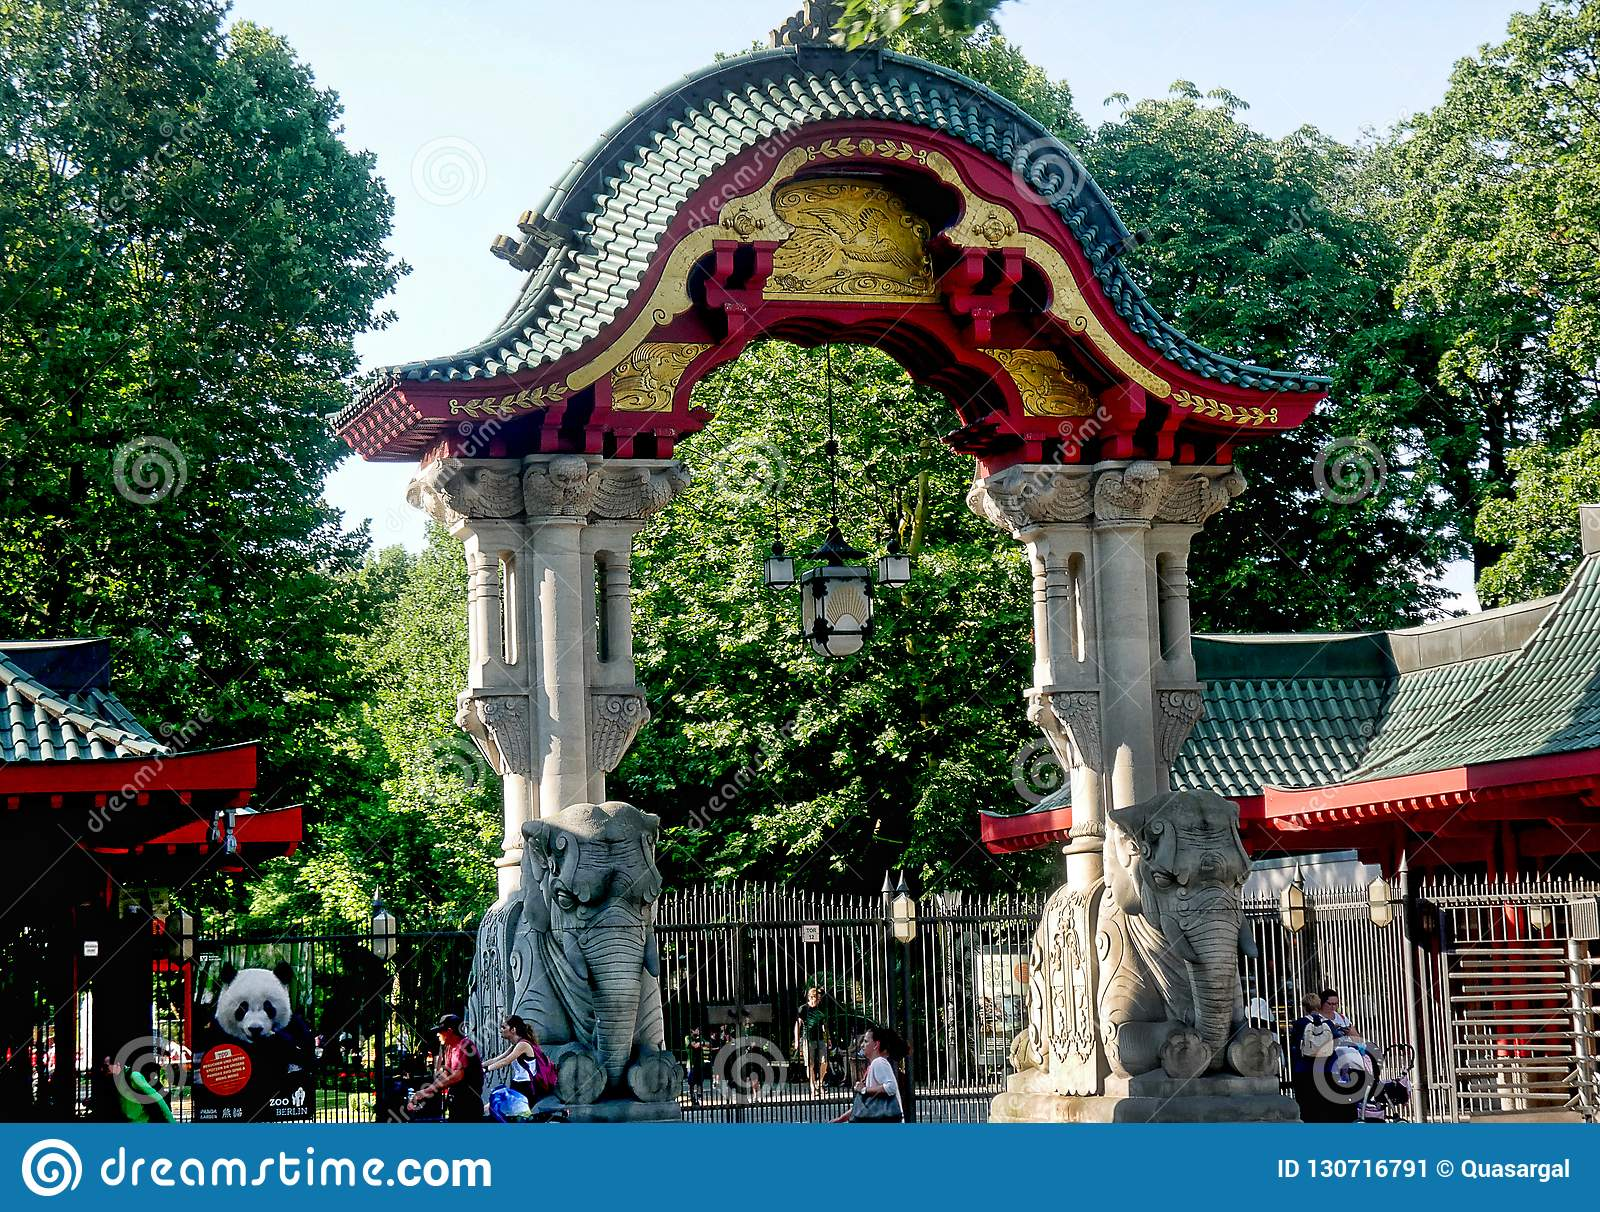 Zoological Gardens In Berlin Germany And Aquarium The Berlin Zoo Is